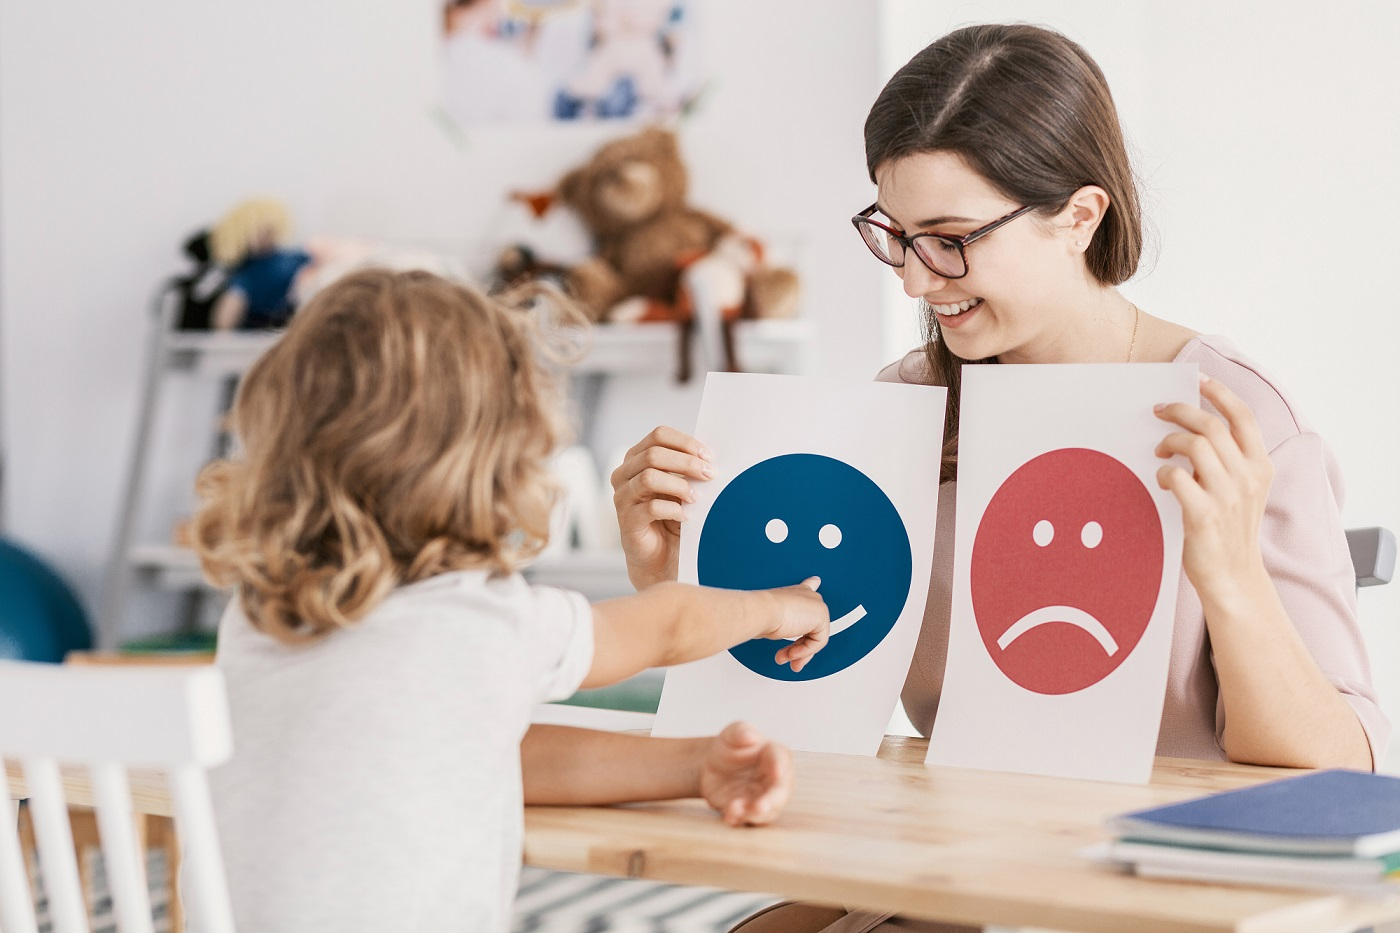 A young child works with a Behavior Specialist - identifying emotions using simple face drawings.